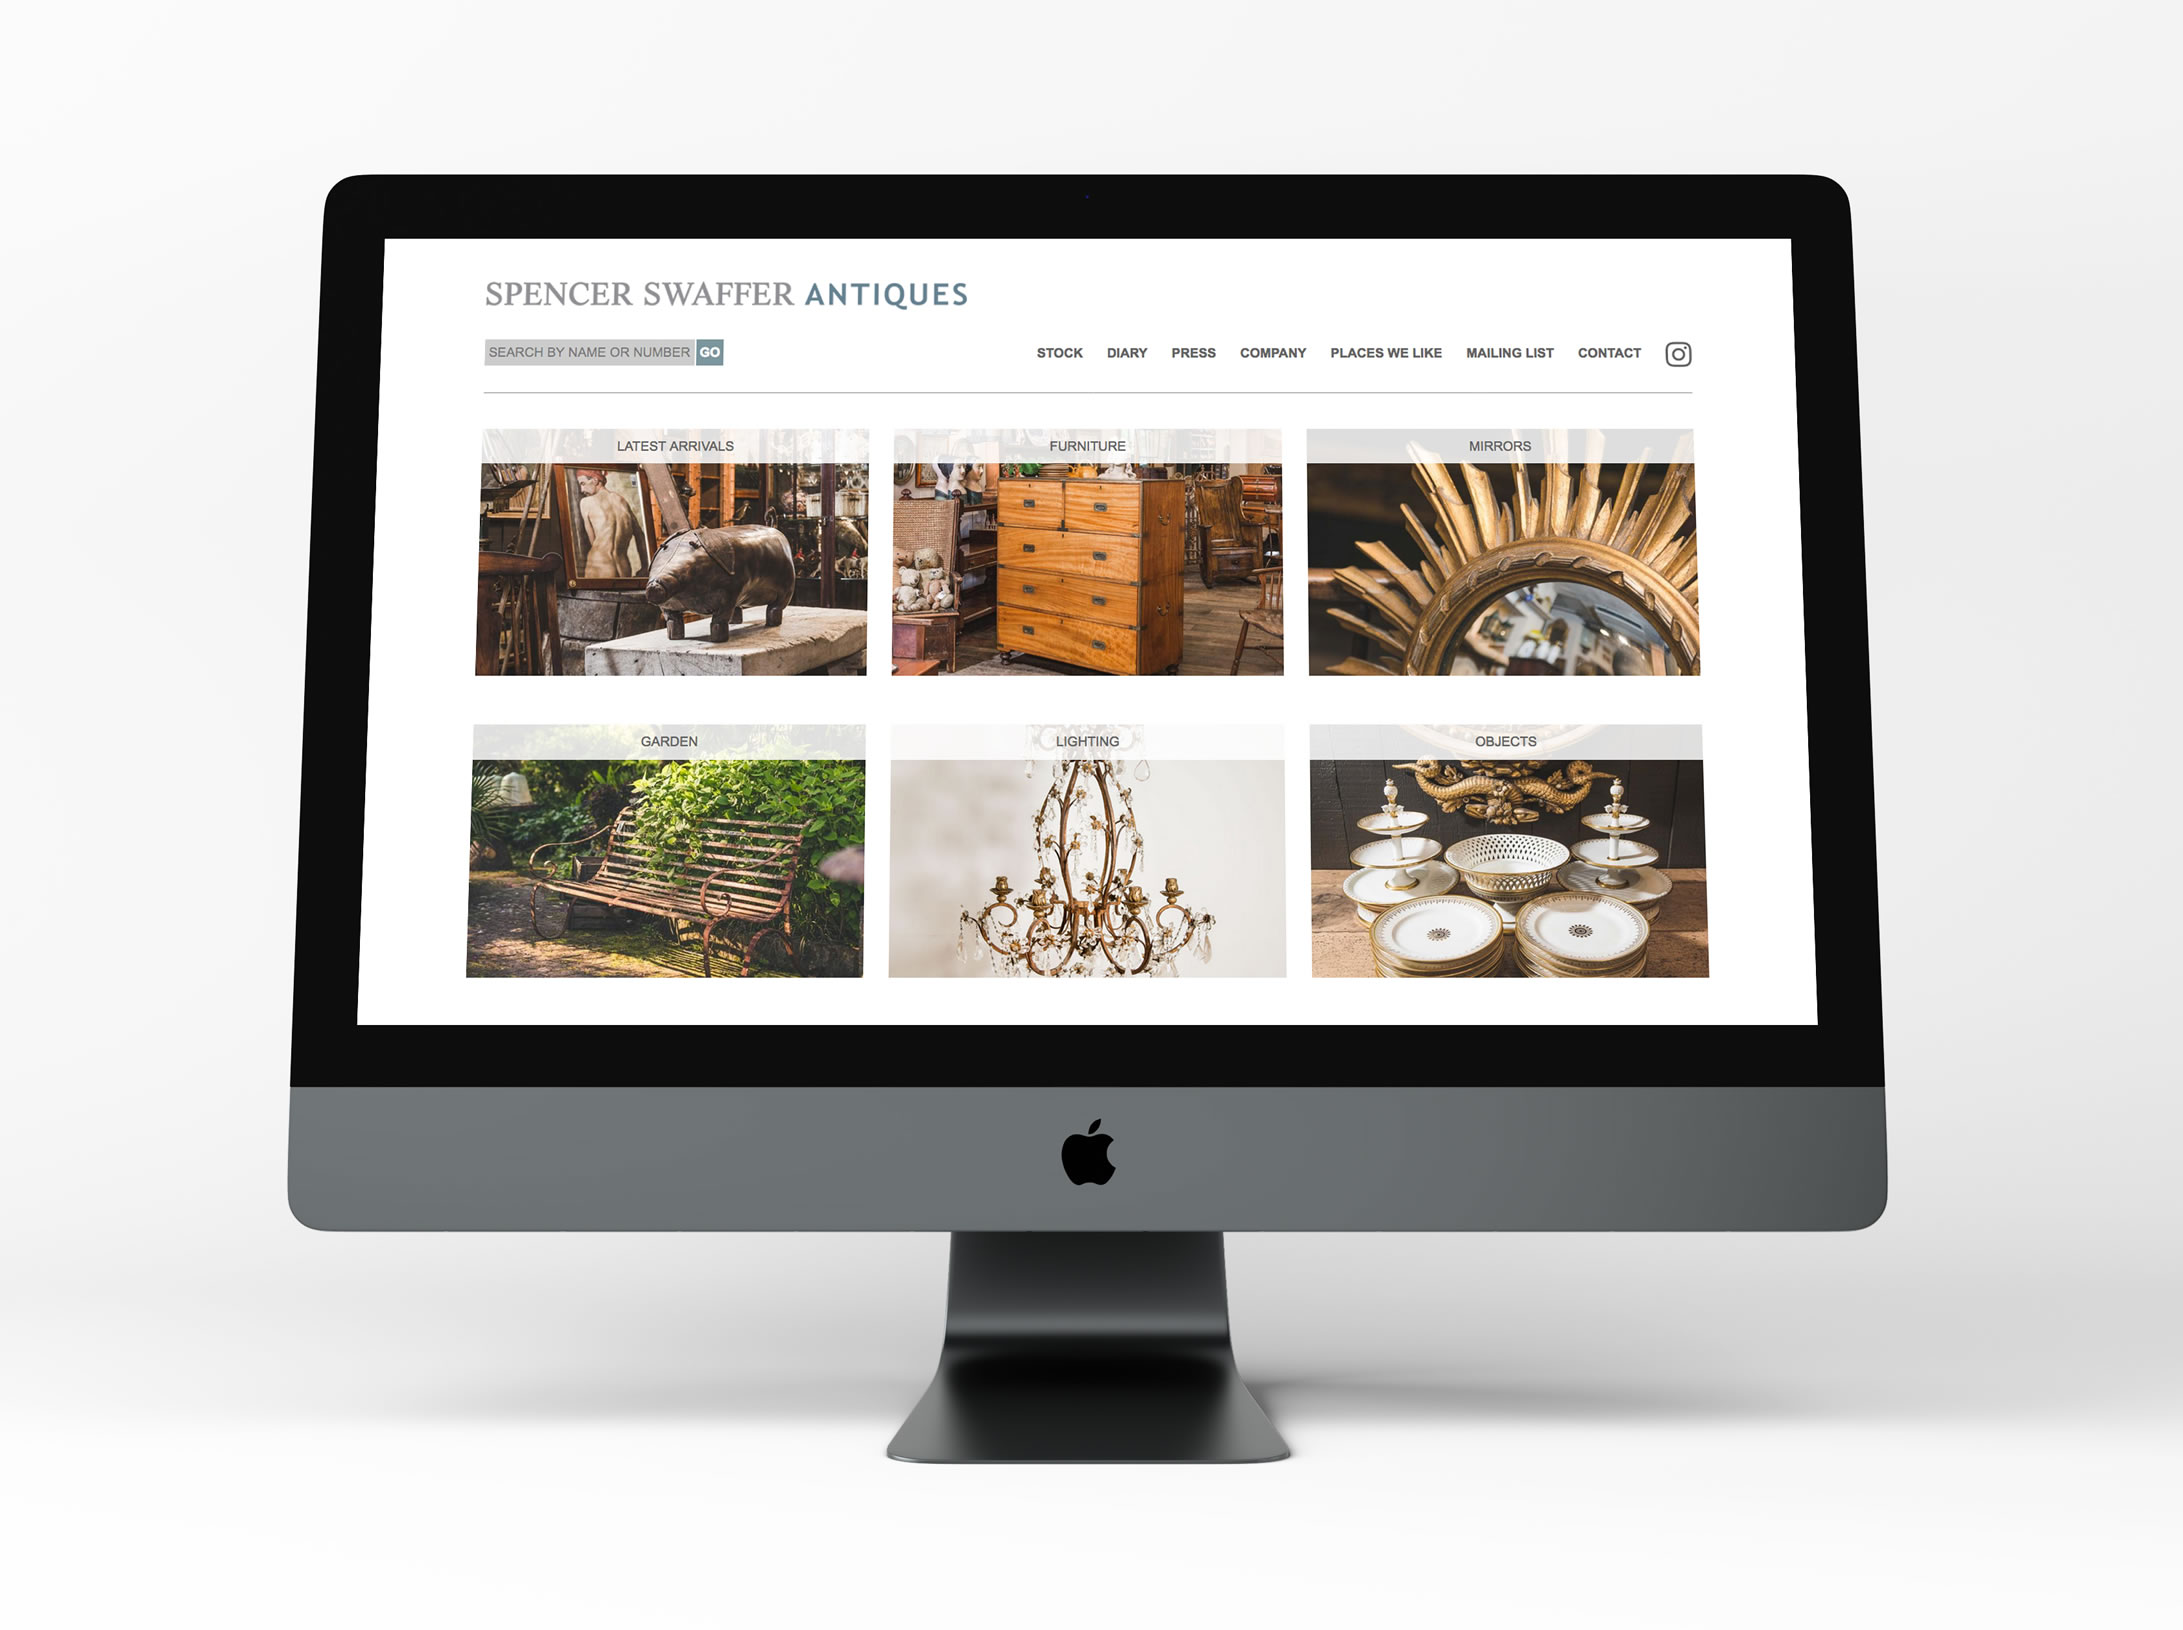 Spencer Swaffer Antiques - New Website